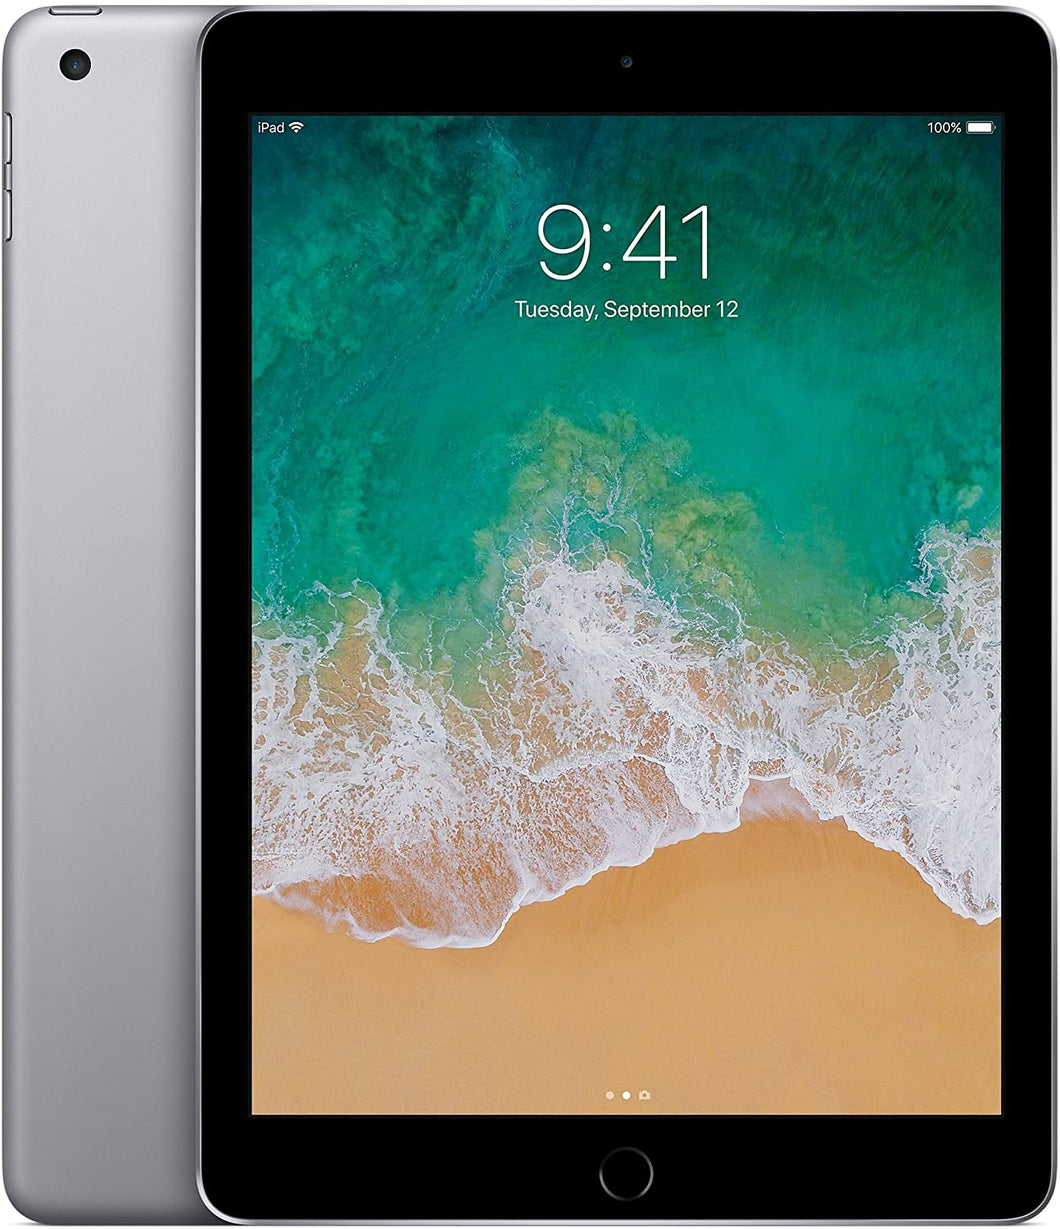 Apple iPad 5th Generation | 9.7in 128GB Space Gray Wi-Fi +4G Unlocked - Renewed - Atlas Computers & Electronics